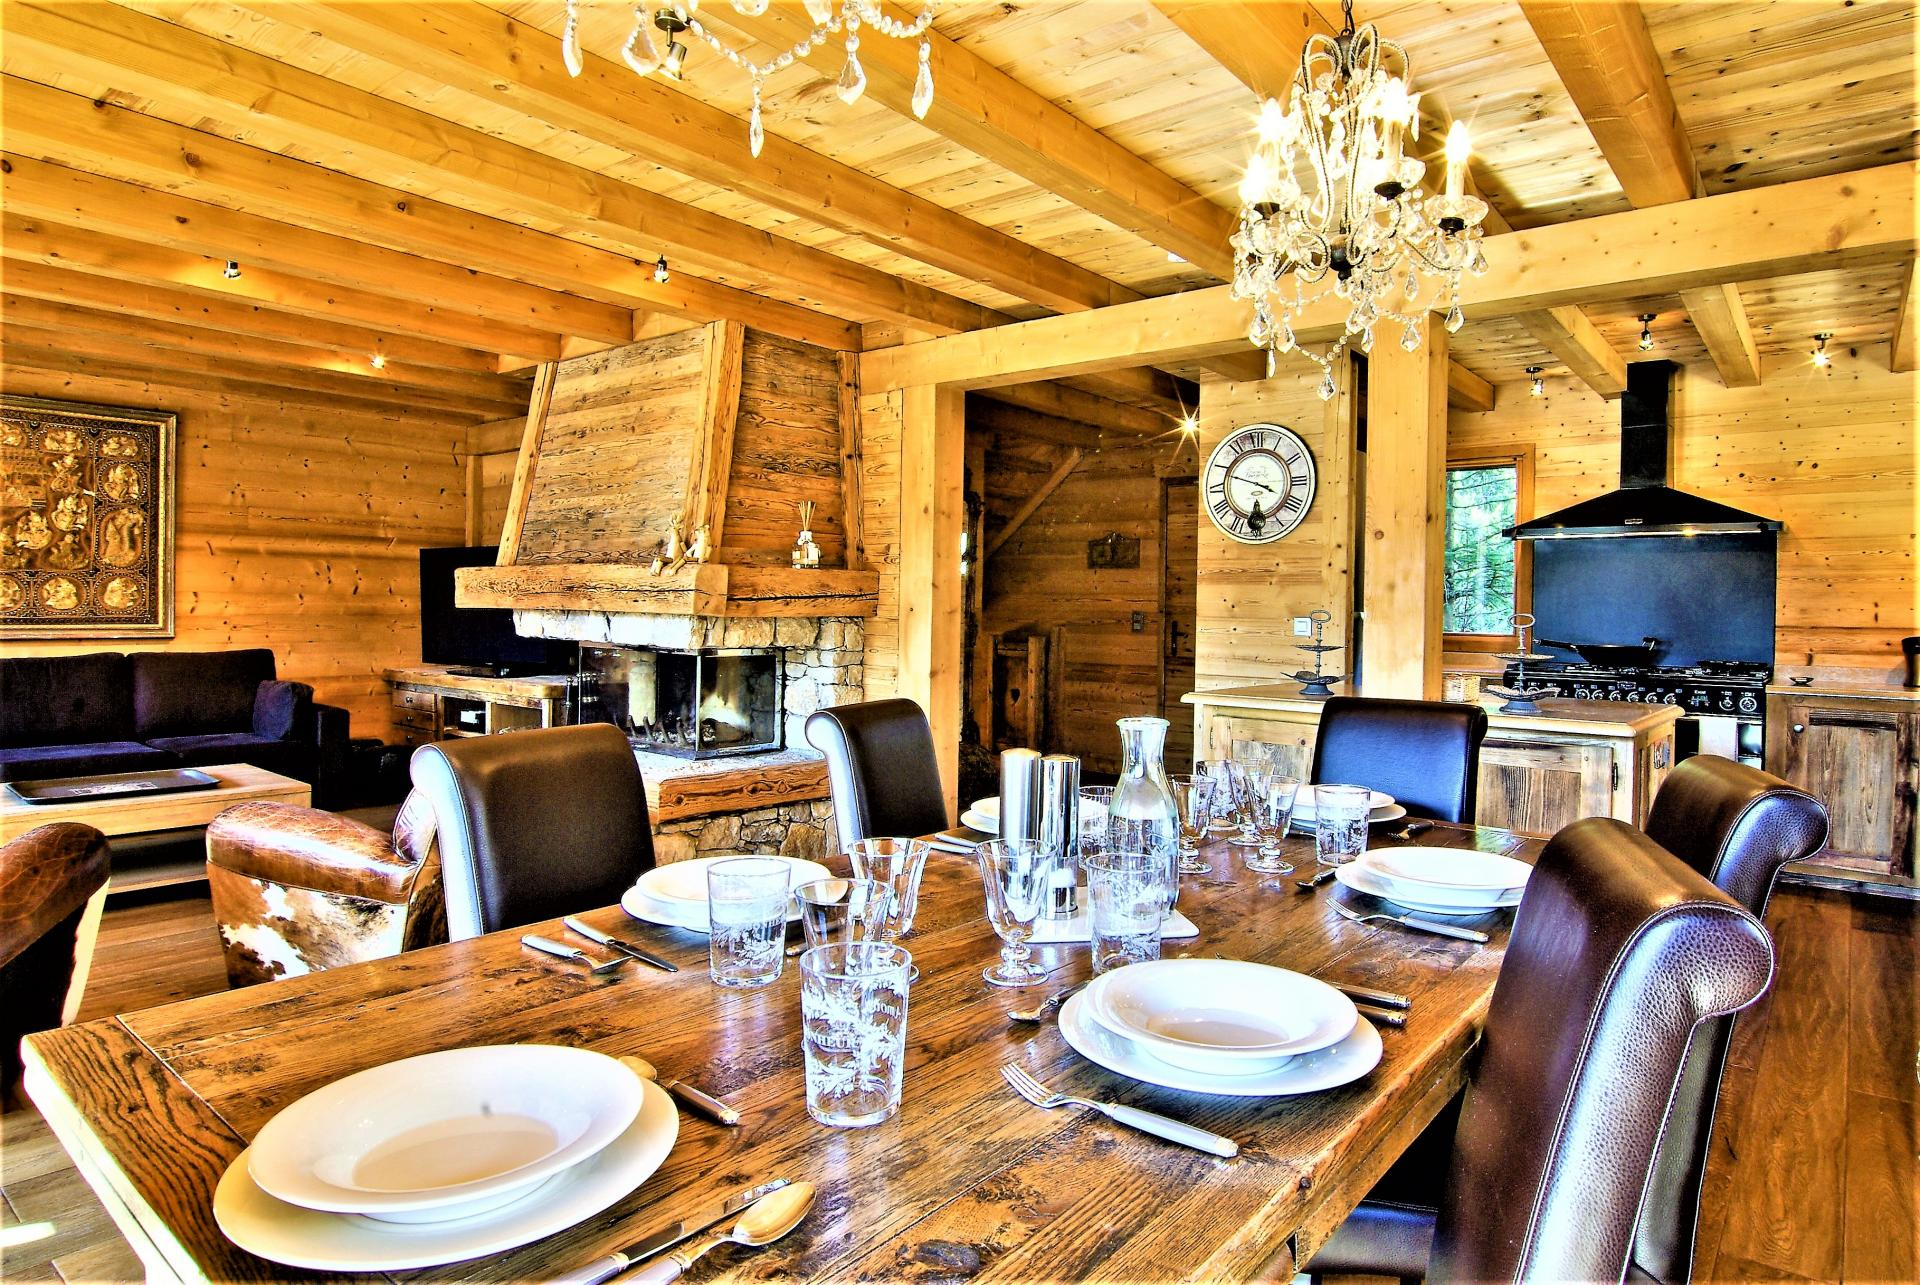 THE KITCHEN OPENS ON TO THE DINING AREA IN CHALET DES BOIS